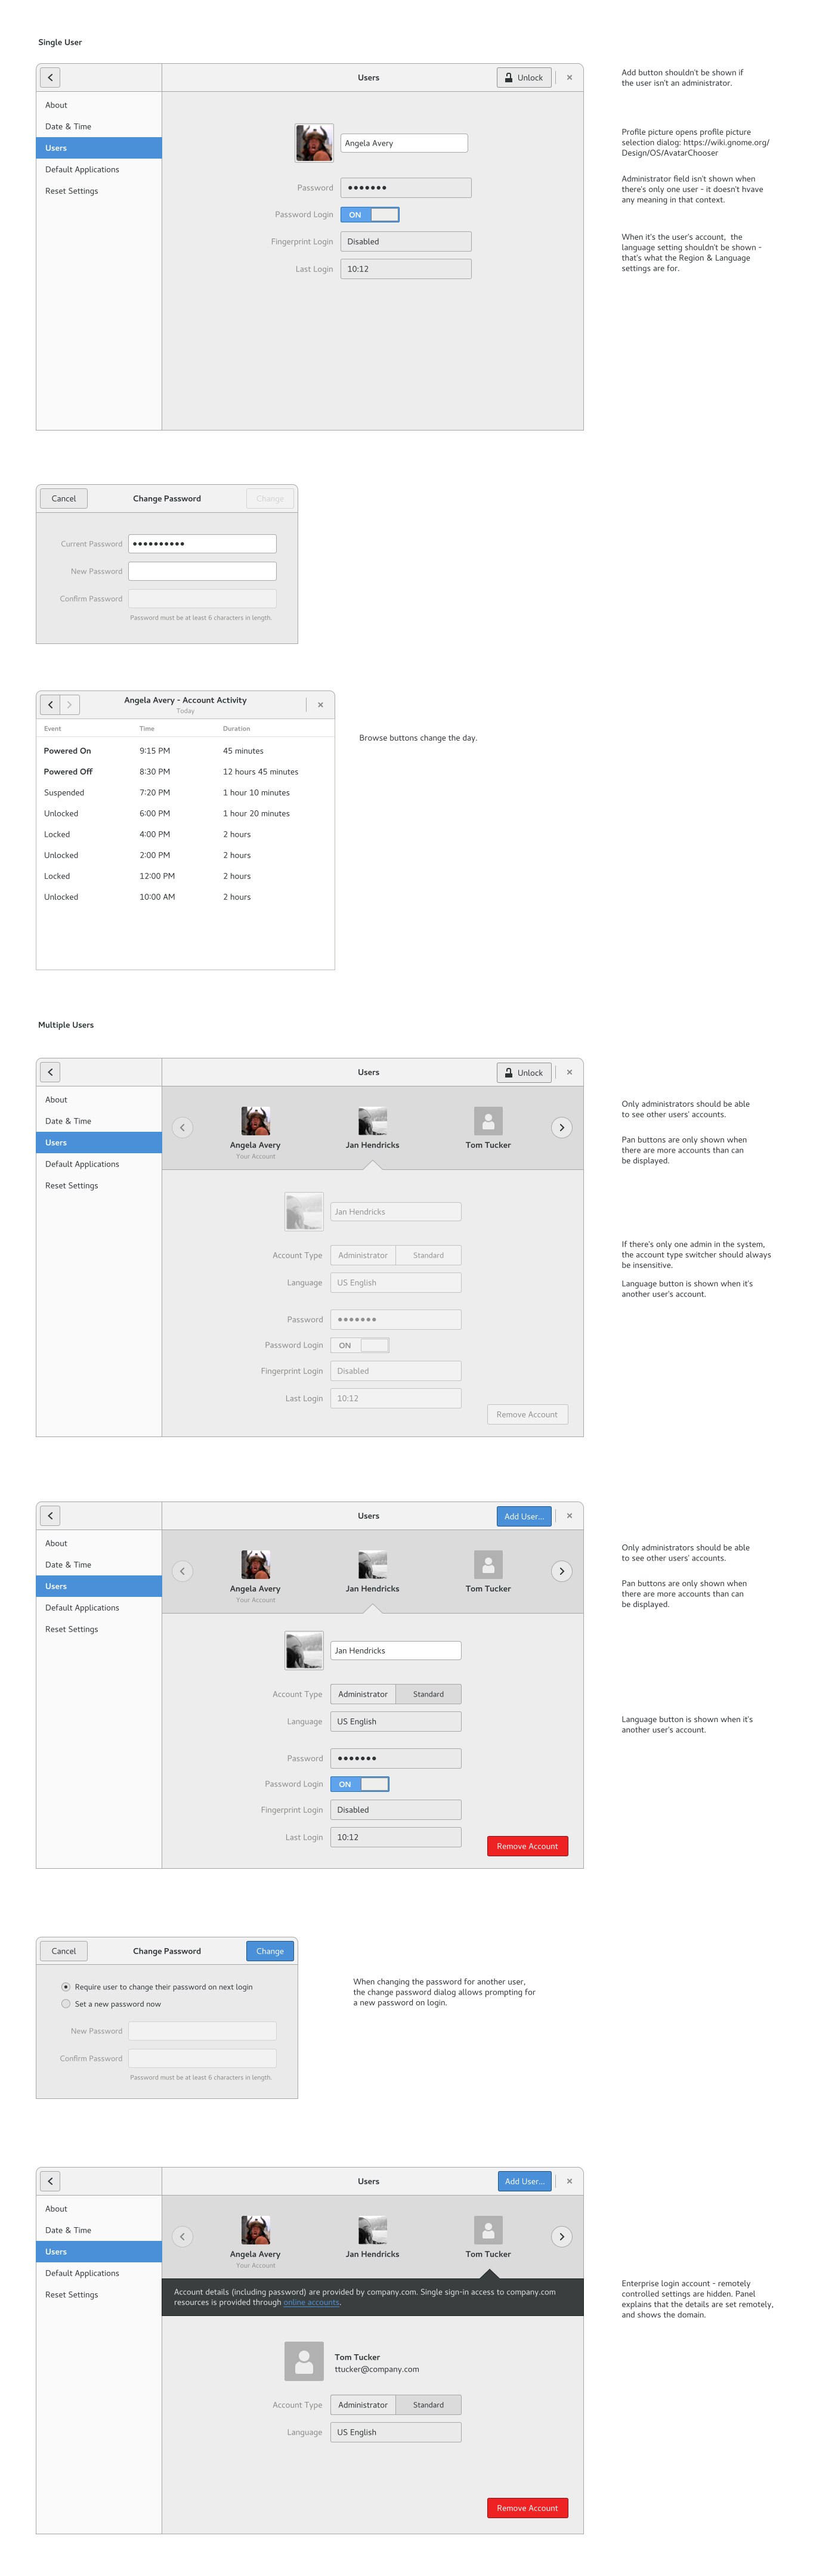 https://raw.githubusercontent.com/gnome-design-team/gnome-mockups/master/system-settings/users/future/users-panel-wires.png